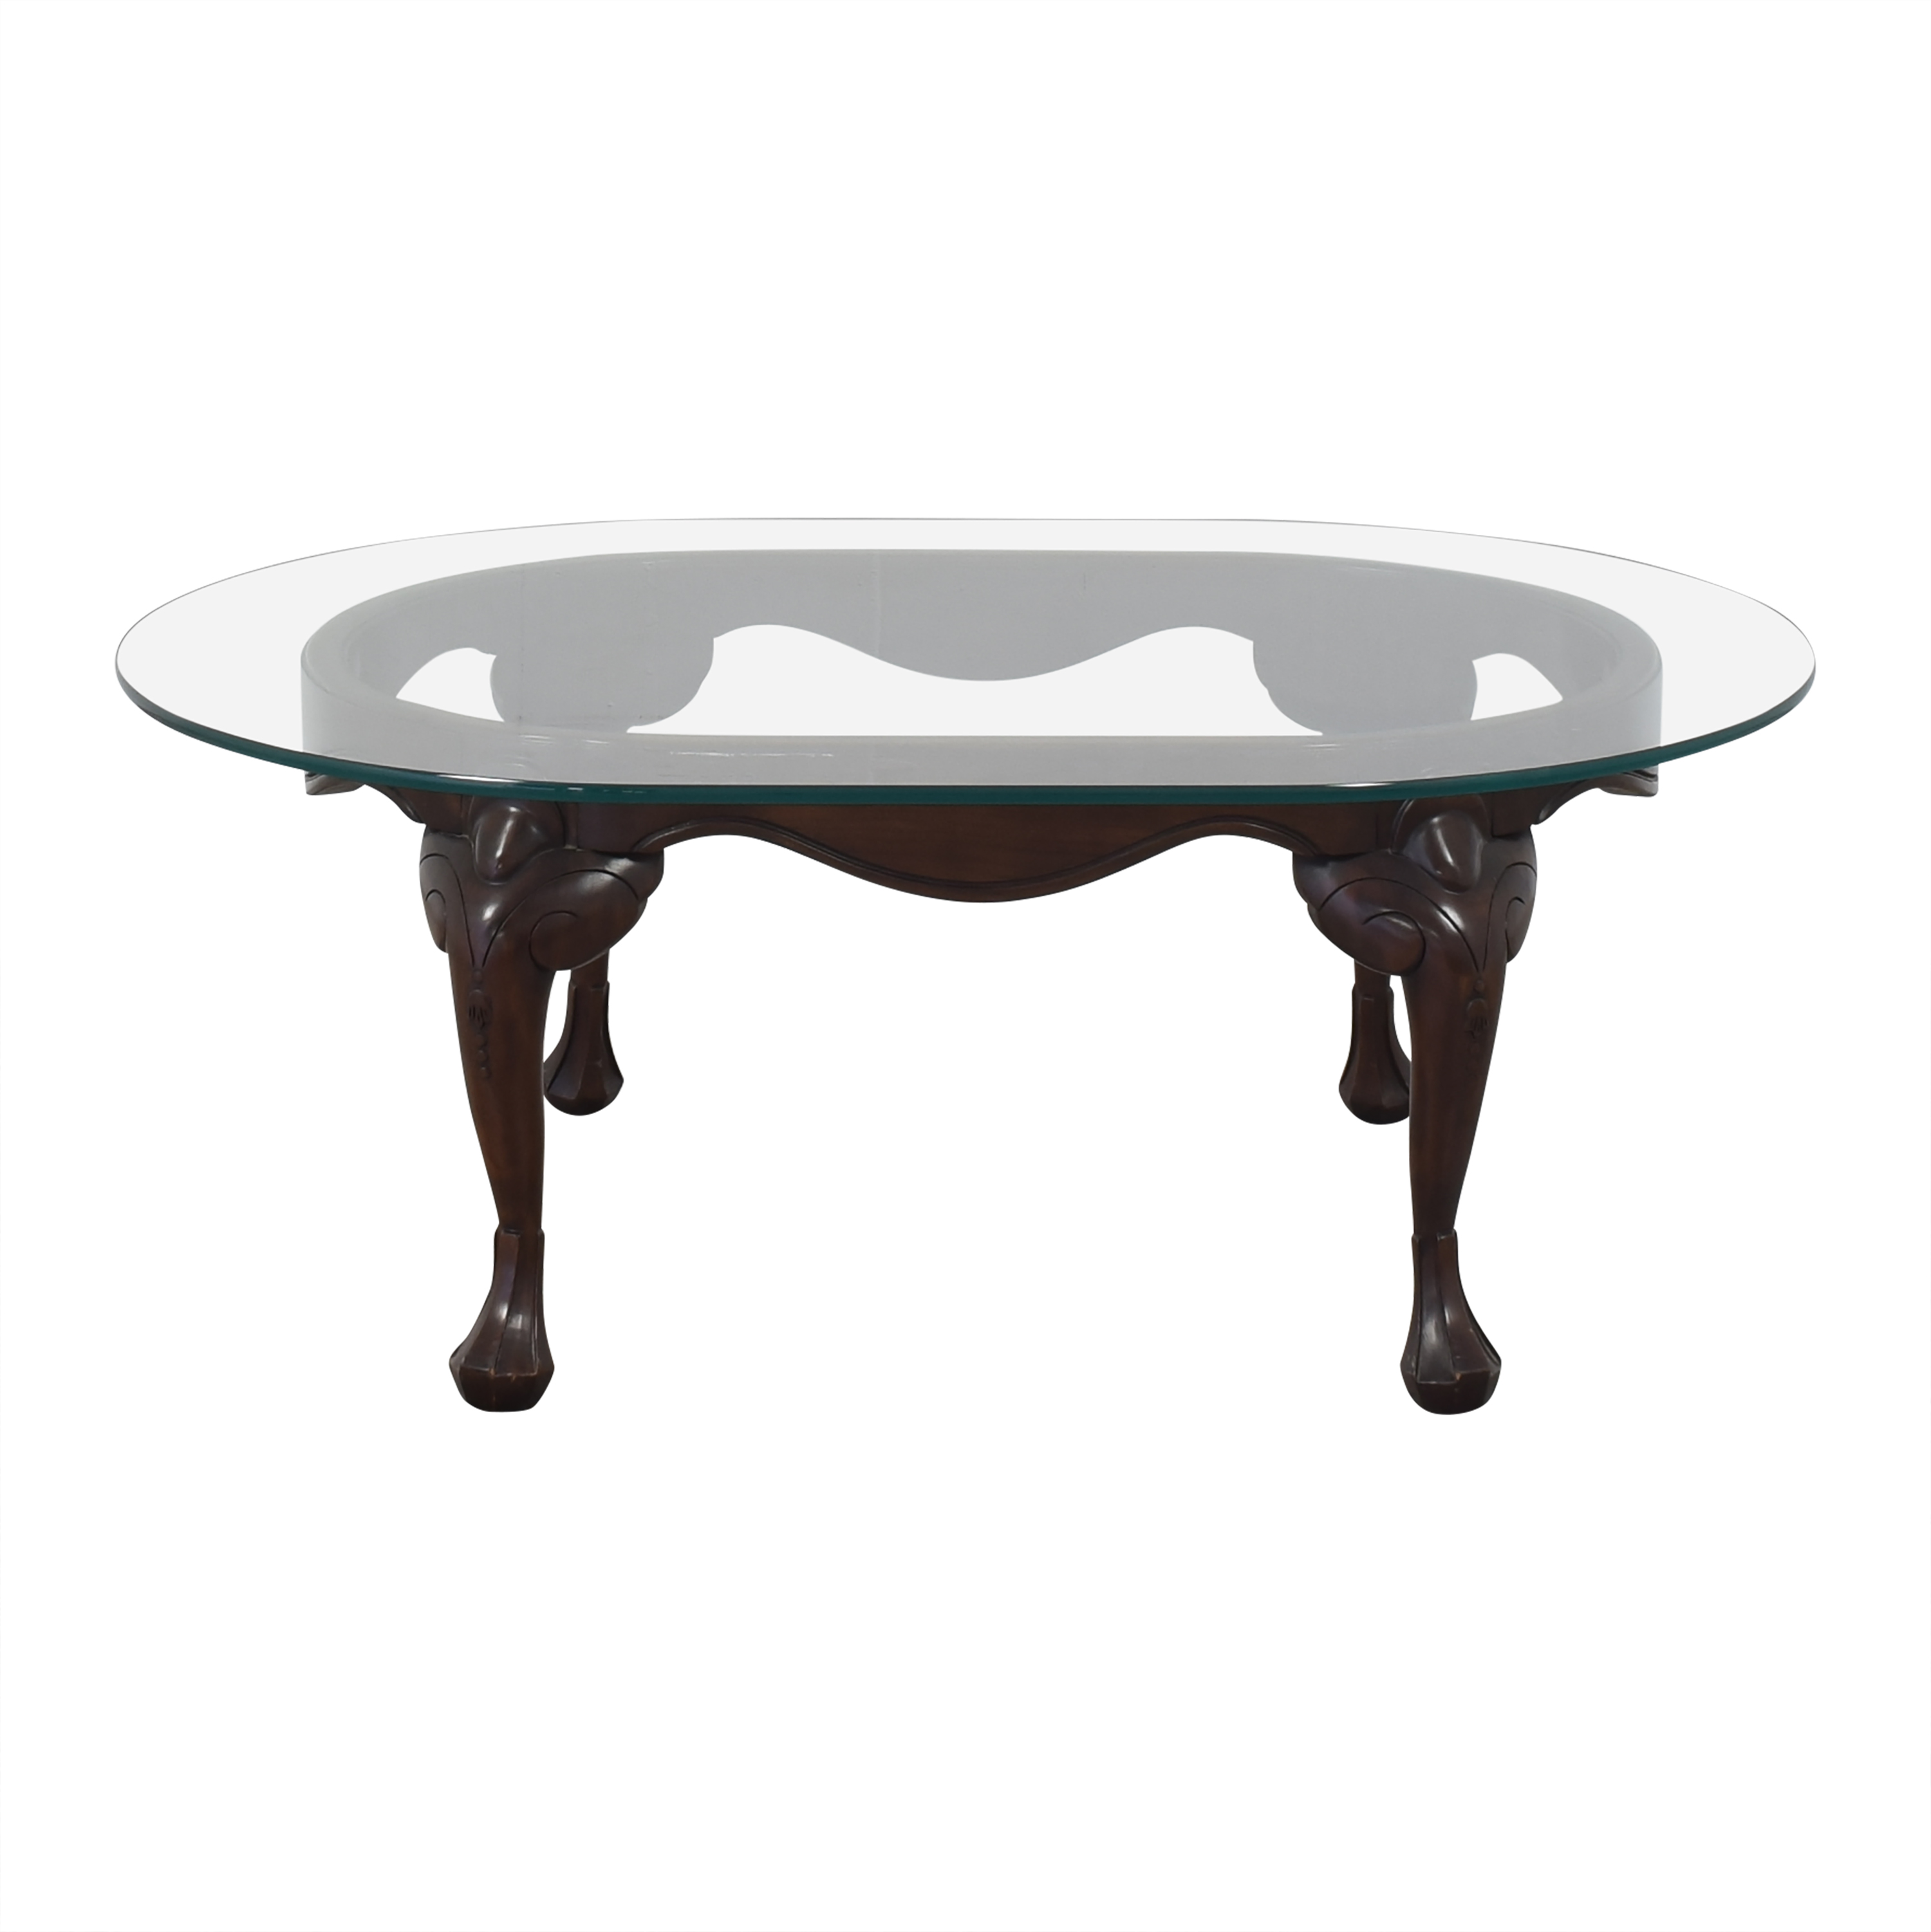 Harden Harden Oval Transparent Coffee Table pa